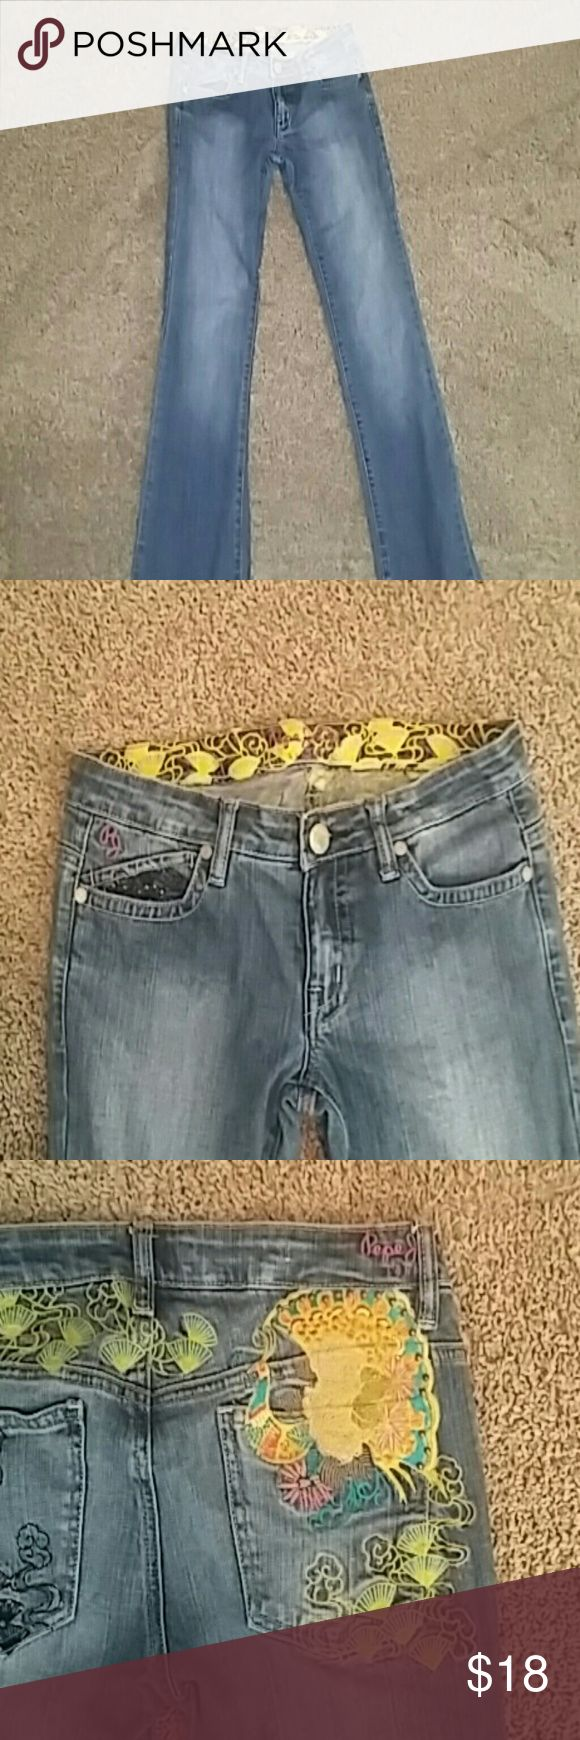 Pepe London jeans EUC!! Very colorful Pepe London jeans Pepe Jeans Jeans